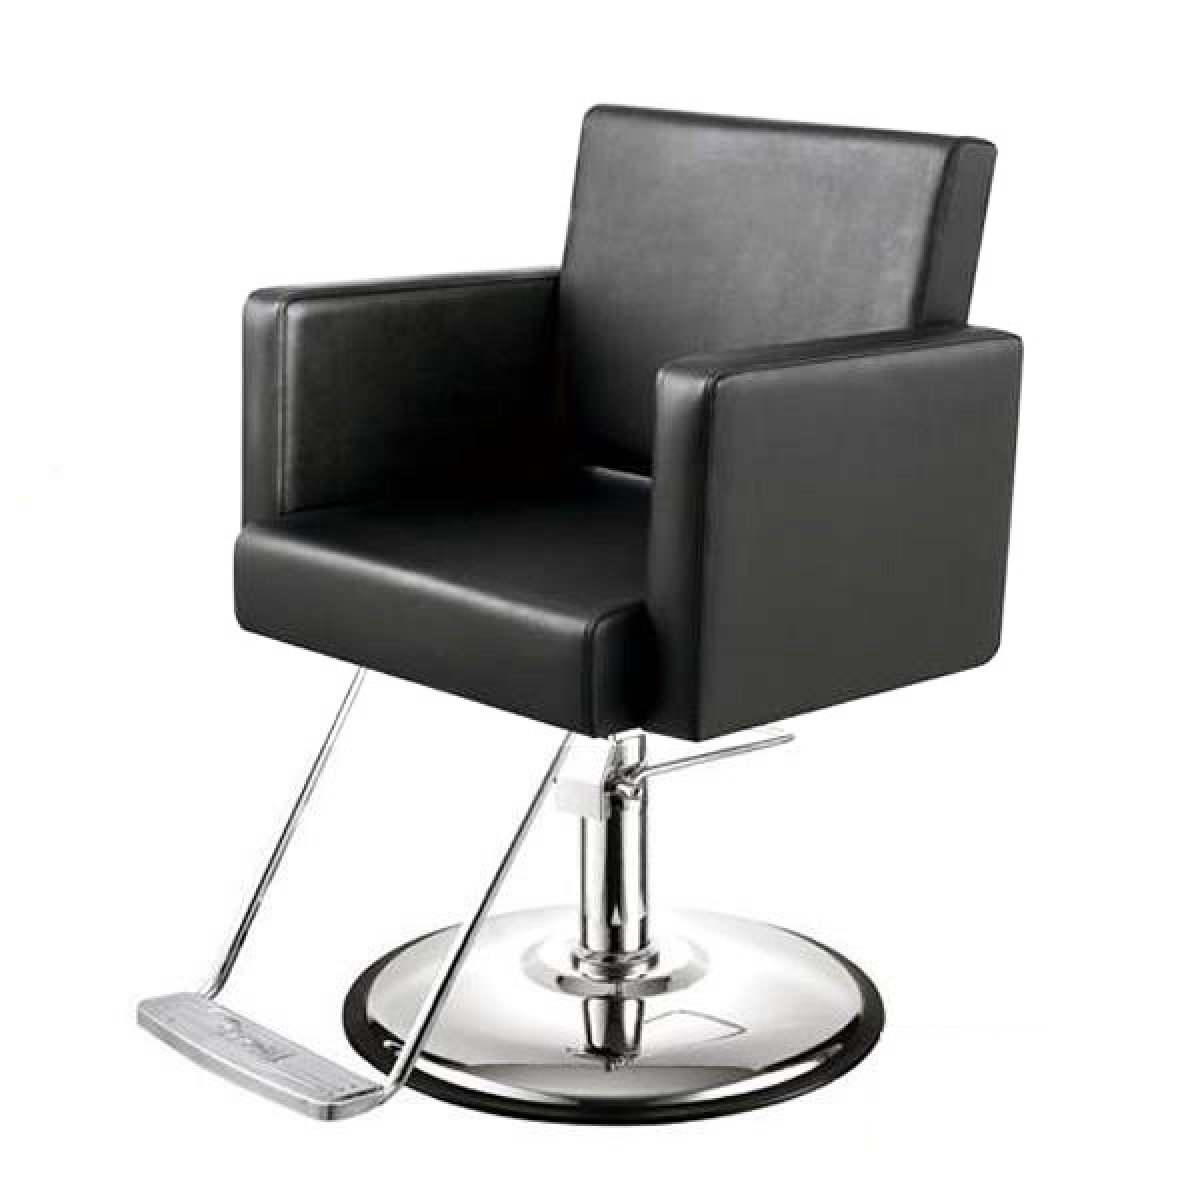 CANON  Salon Styling Chair Hair Styling Chair Hair Salon Chairs.    sc 1 st  AGS BEAUTY & CANON